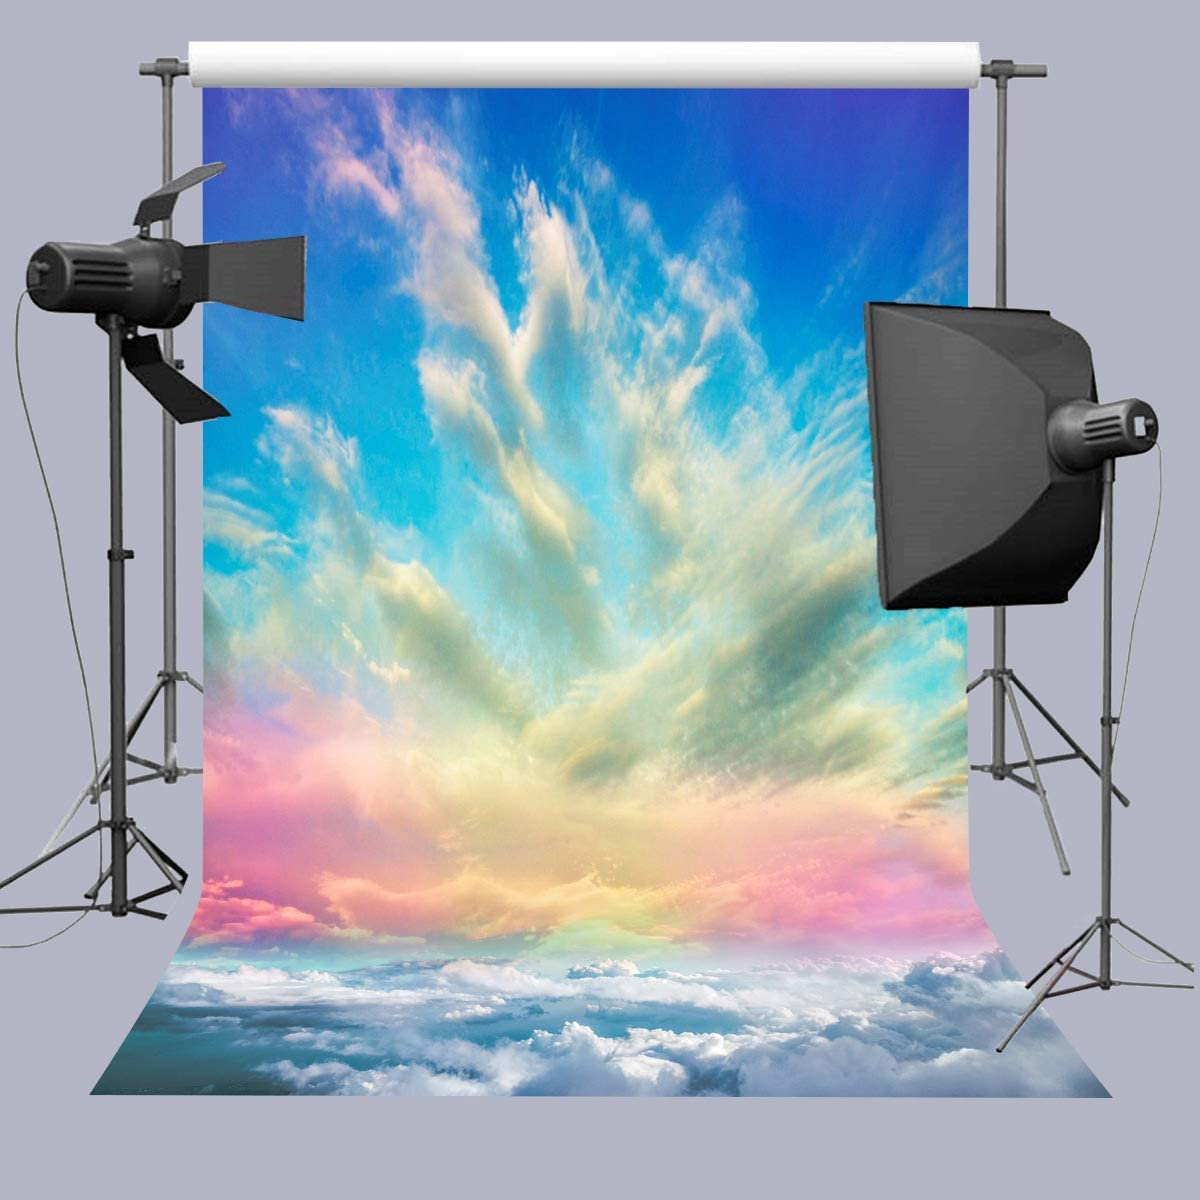 6.5x10ft Background Spring Flowers Photography Backdrop Studio Photo Props LHFU627